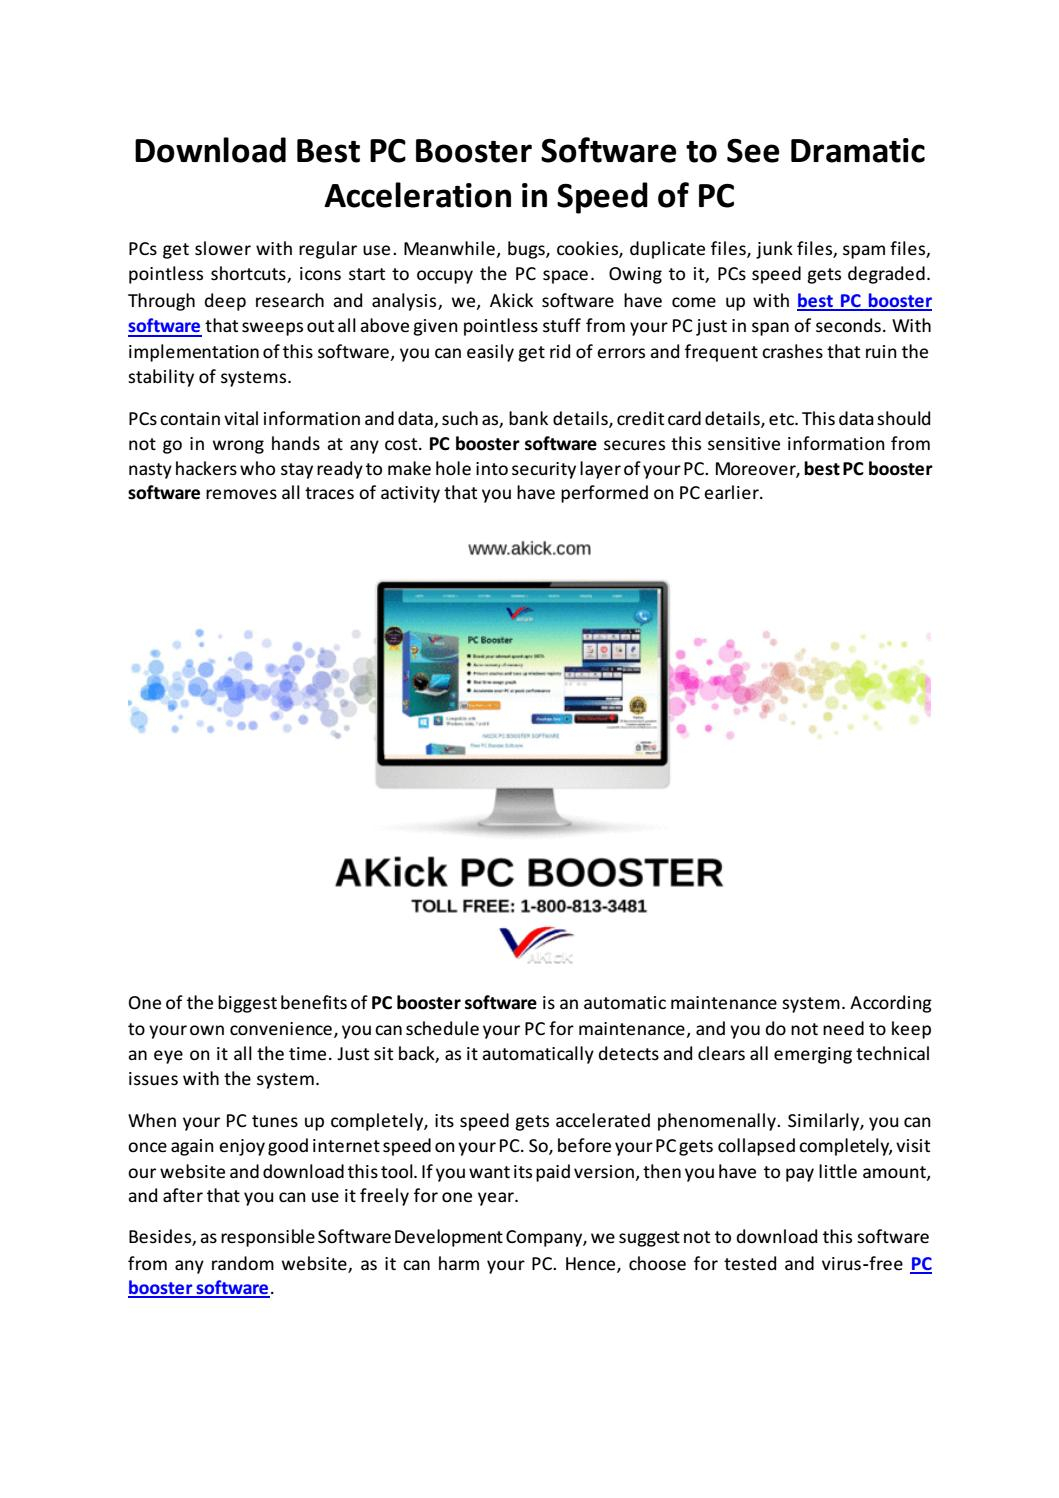 Download Best PC Booster Software - Akick by AKick software - issuu